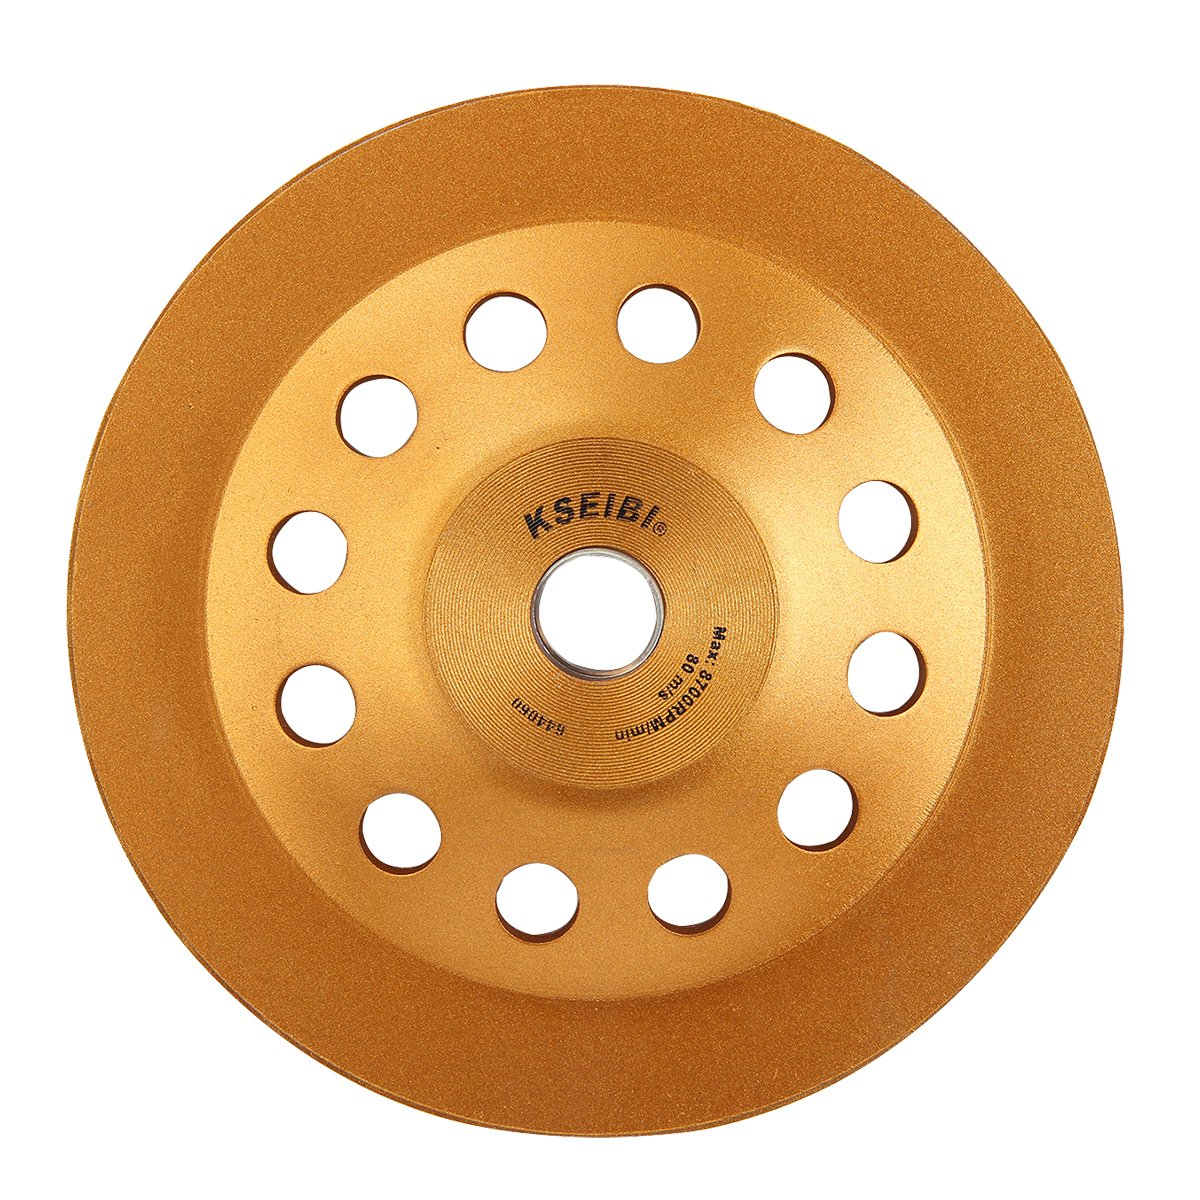 KSEIBI 644060 Super Turbo Diamond Cup wheel 7 Inch (180 mm) With Reduced Ring by KSEIBI (Image #8)